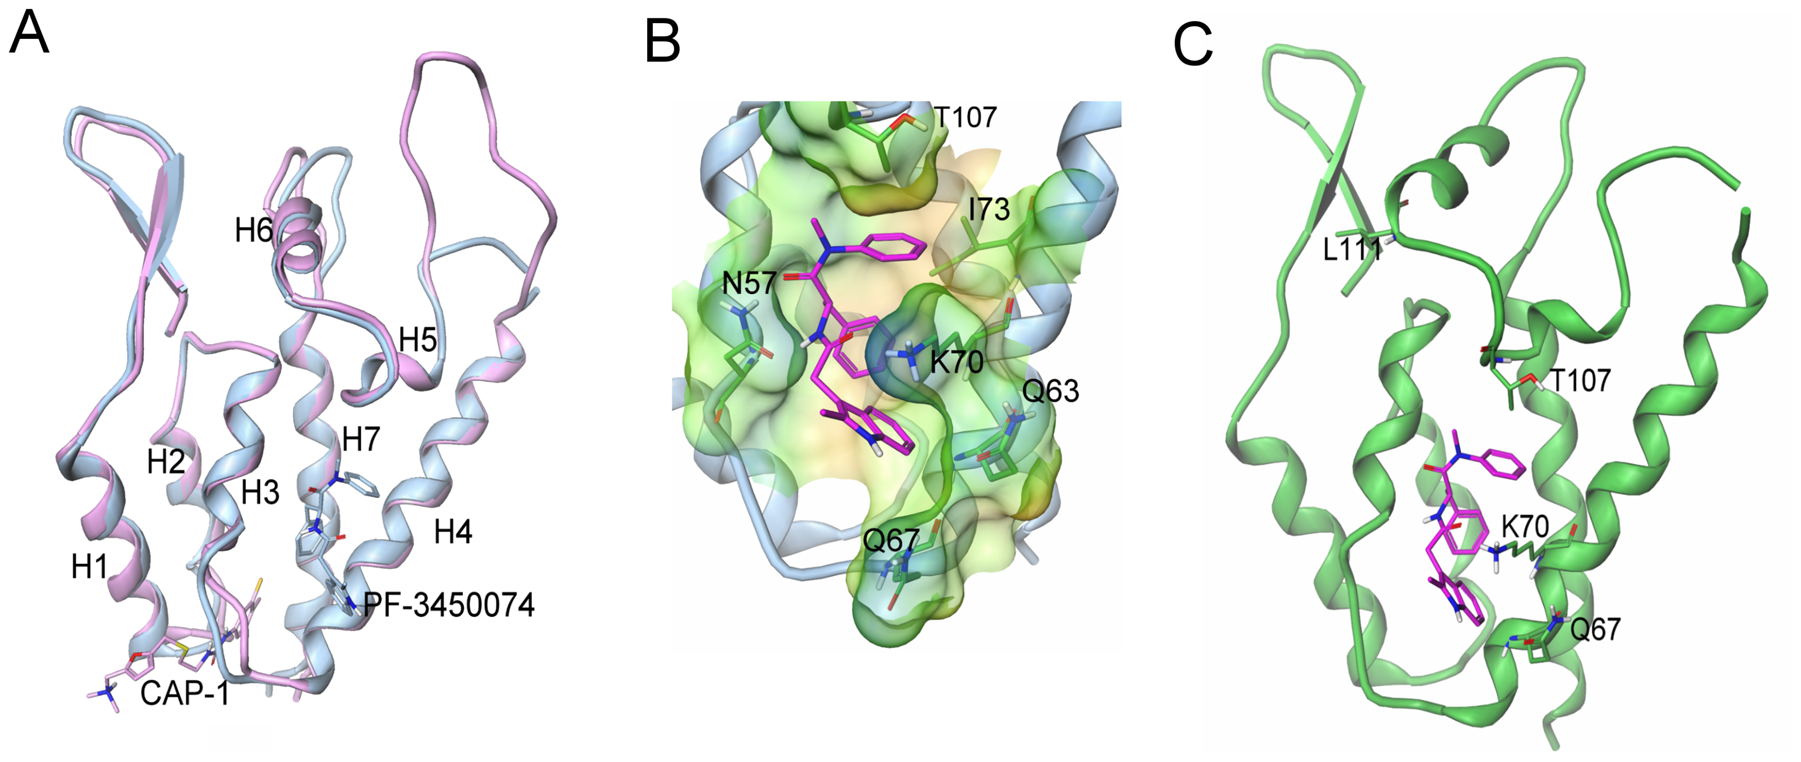 Structure of the novel inhibitor binding site and context in the NTD.